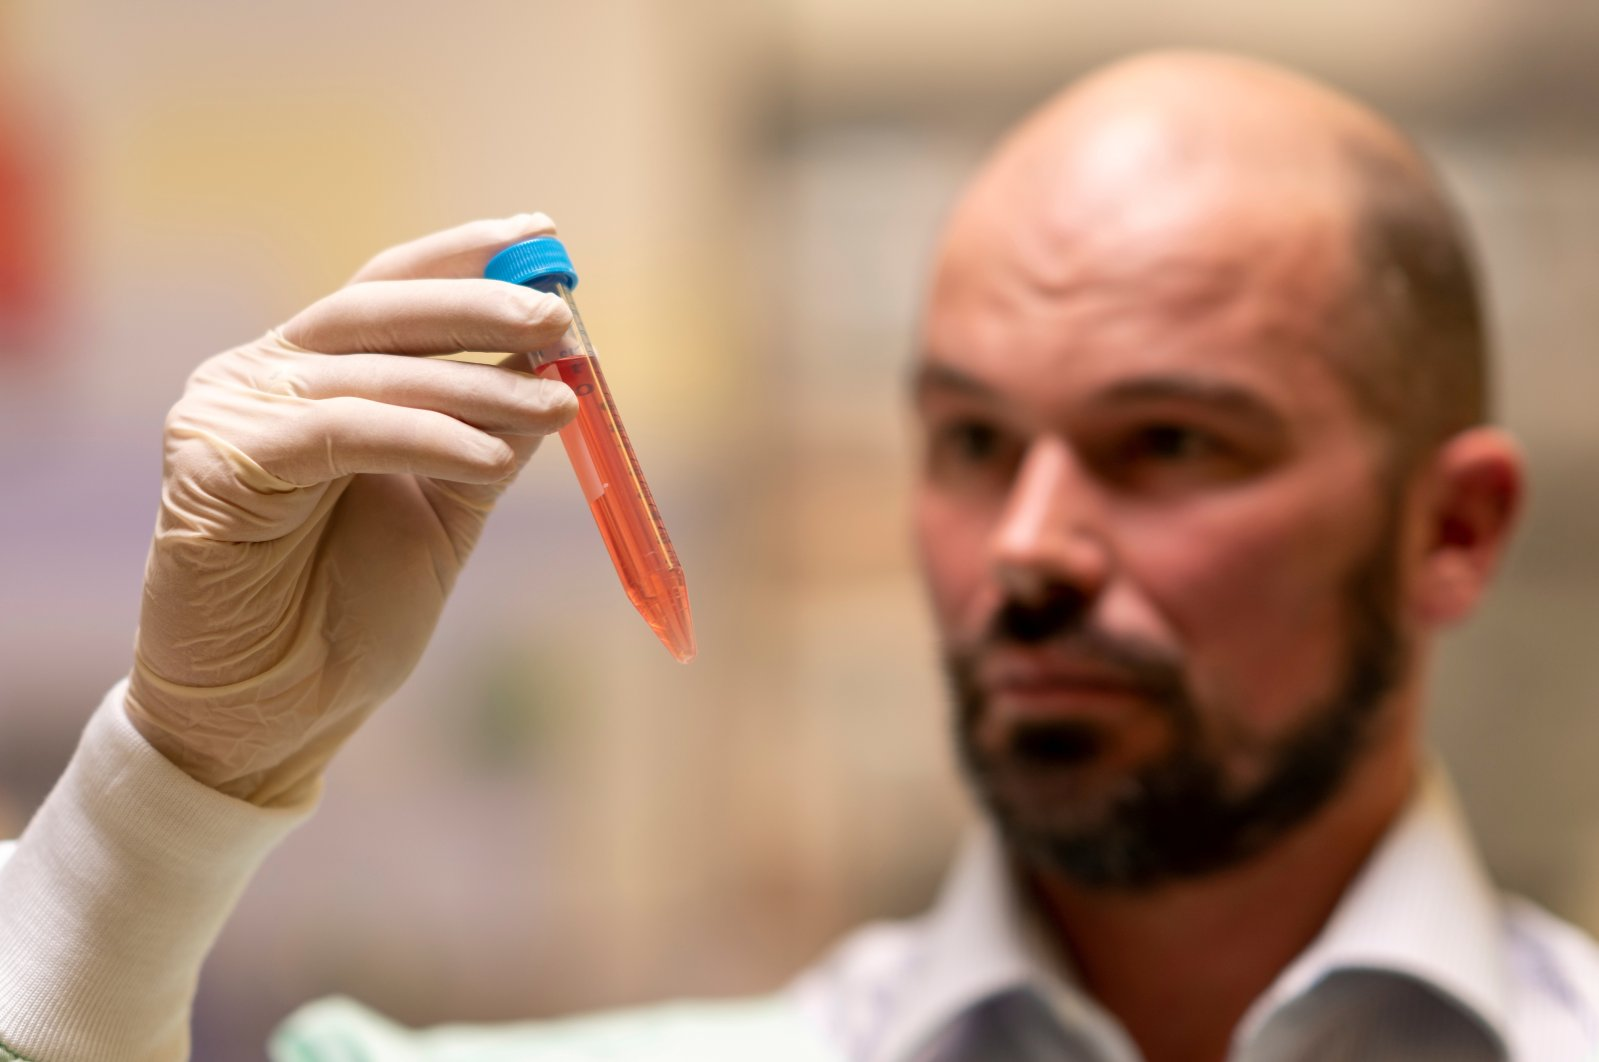 Professor David Nisbet from Australian National University (ANU) holds a vial as researchers from ANU developed a new type of hydrogel that could help to defeat Parkinson's disease, in this undated handout picture. (Reuters Photo)